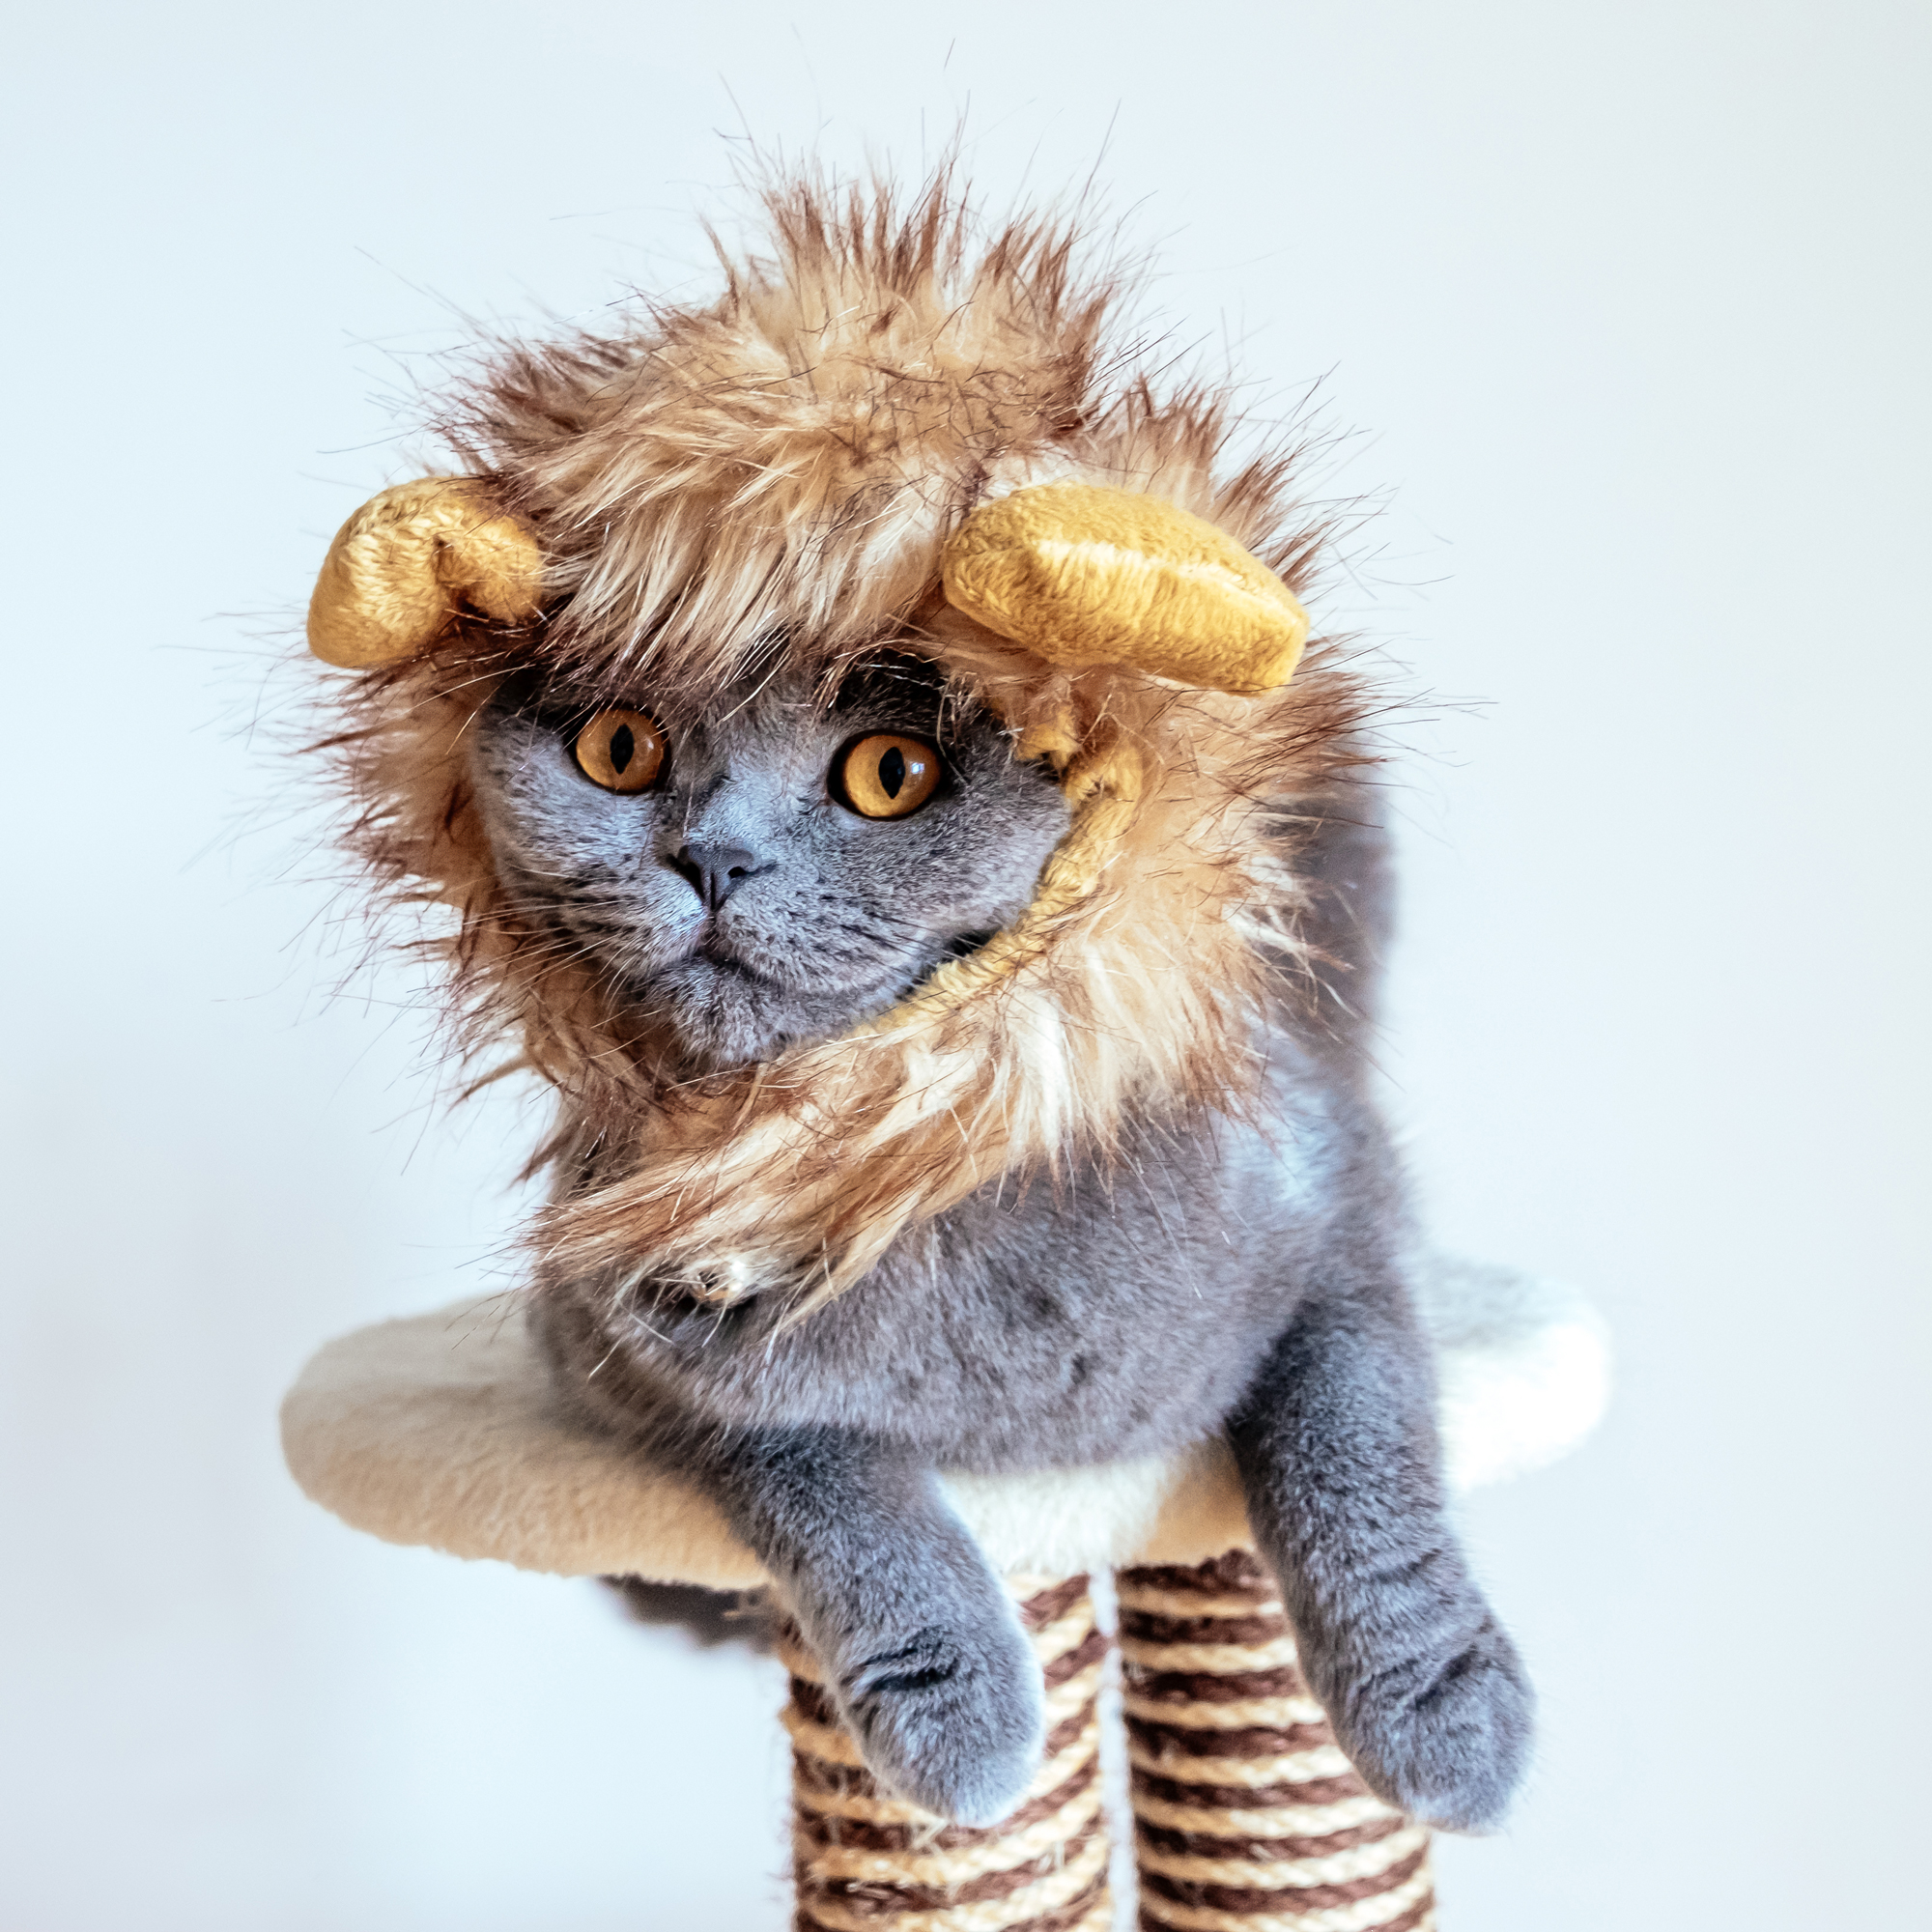 10 Hilarious Halloween Costumes for Your Cat